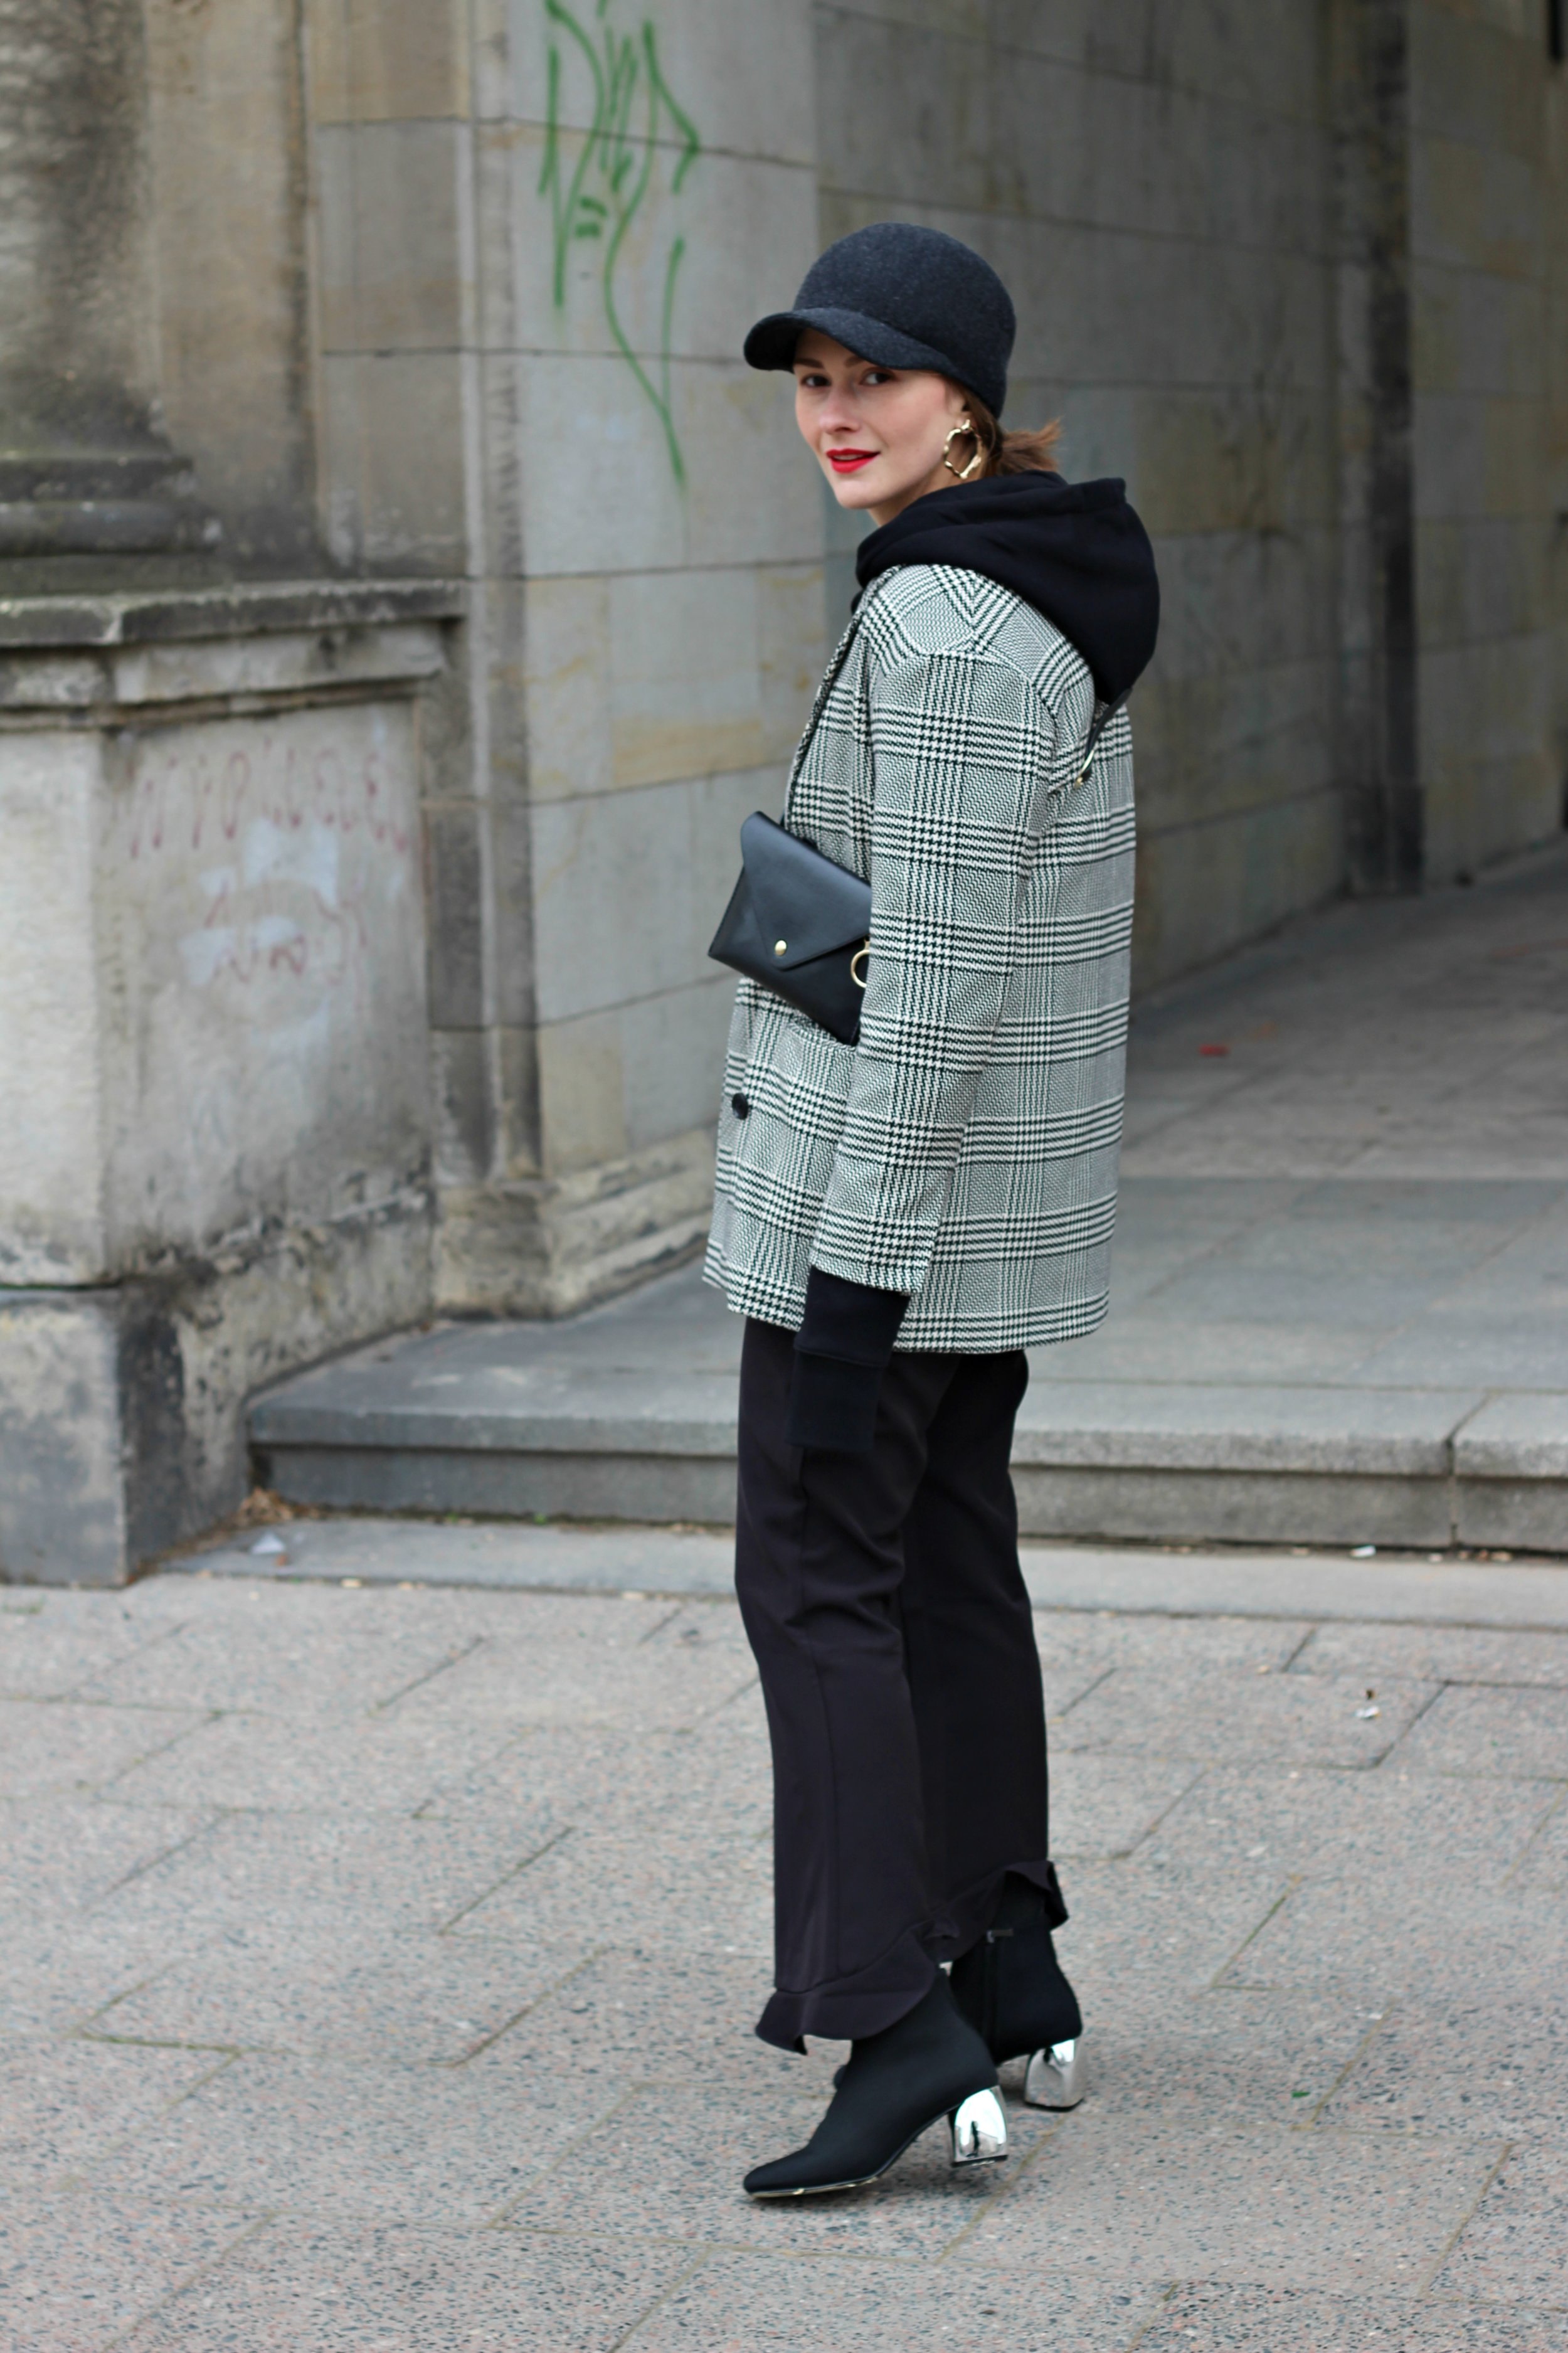 annaporter-hugo-hoodie-checked-blazer-casual-look-6